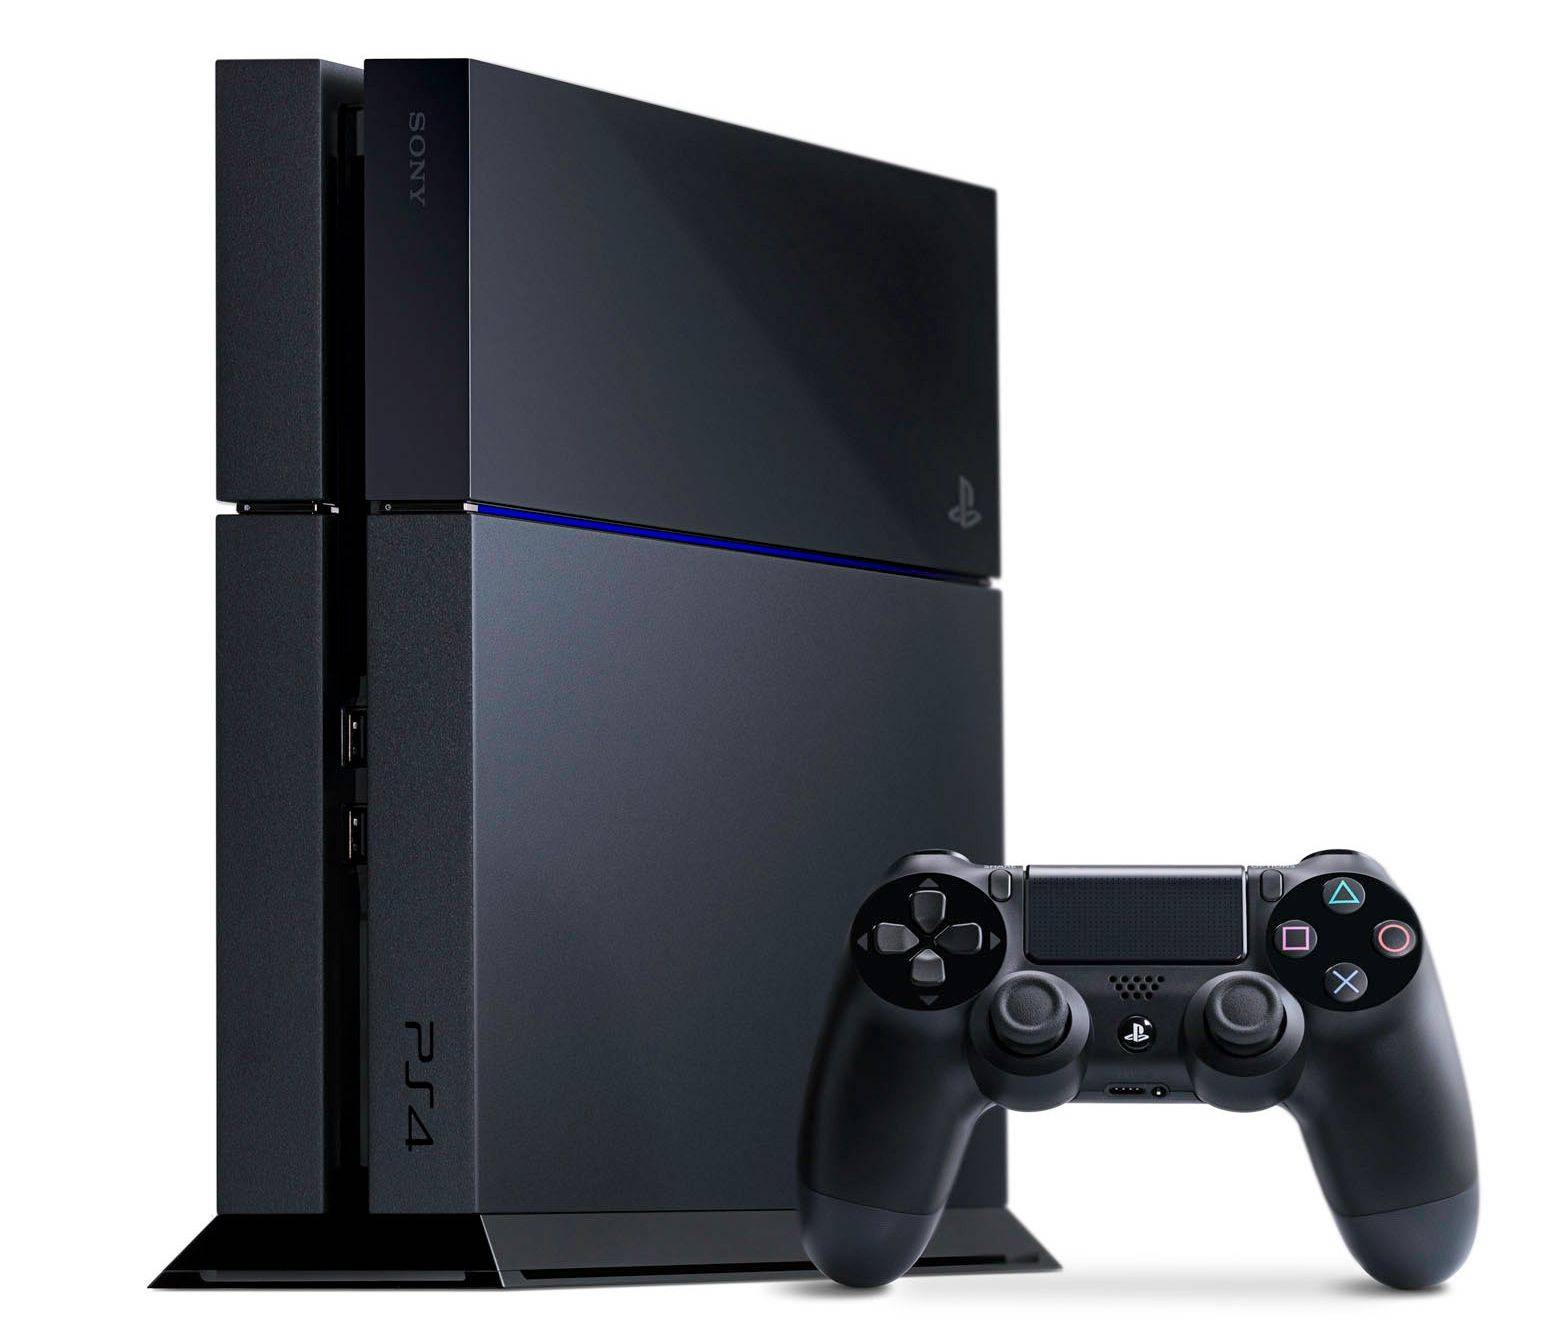 Sony's PlayStation 4 console hits stores today.